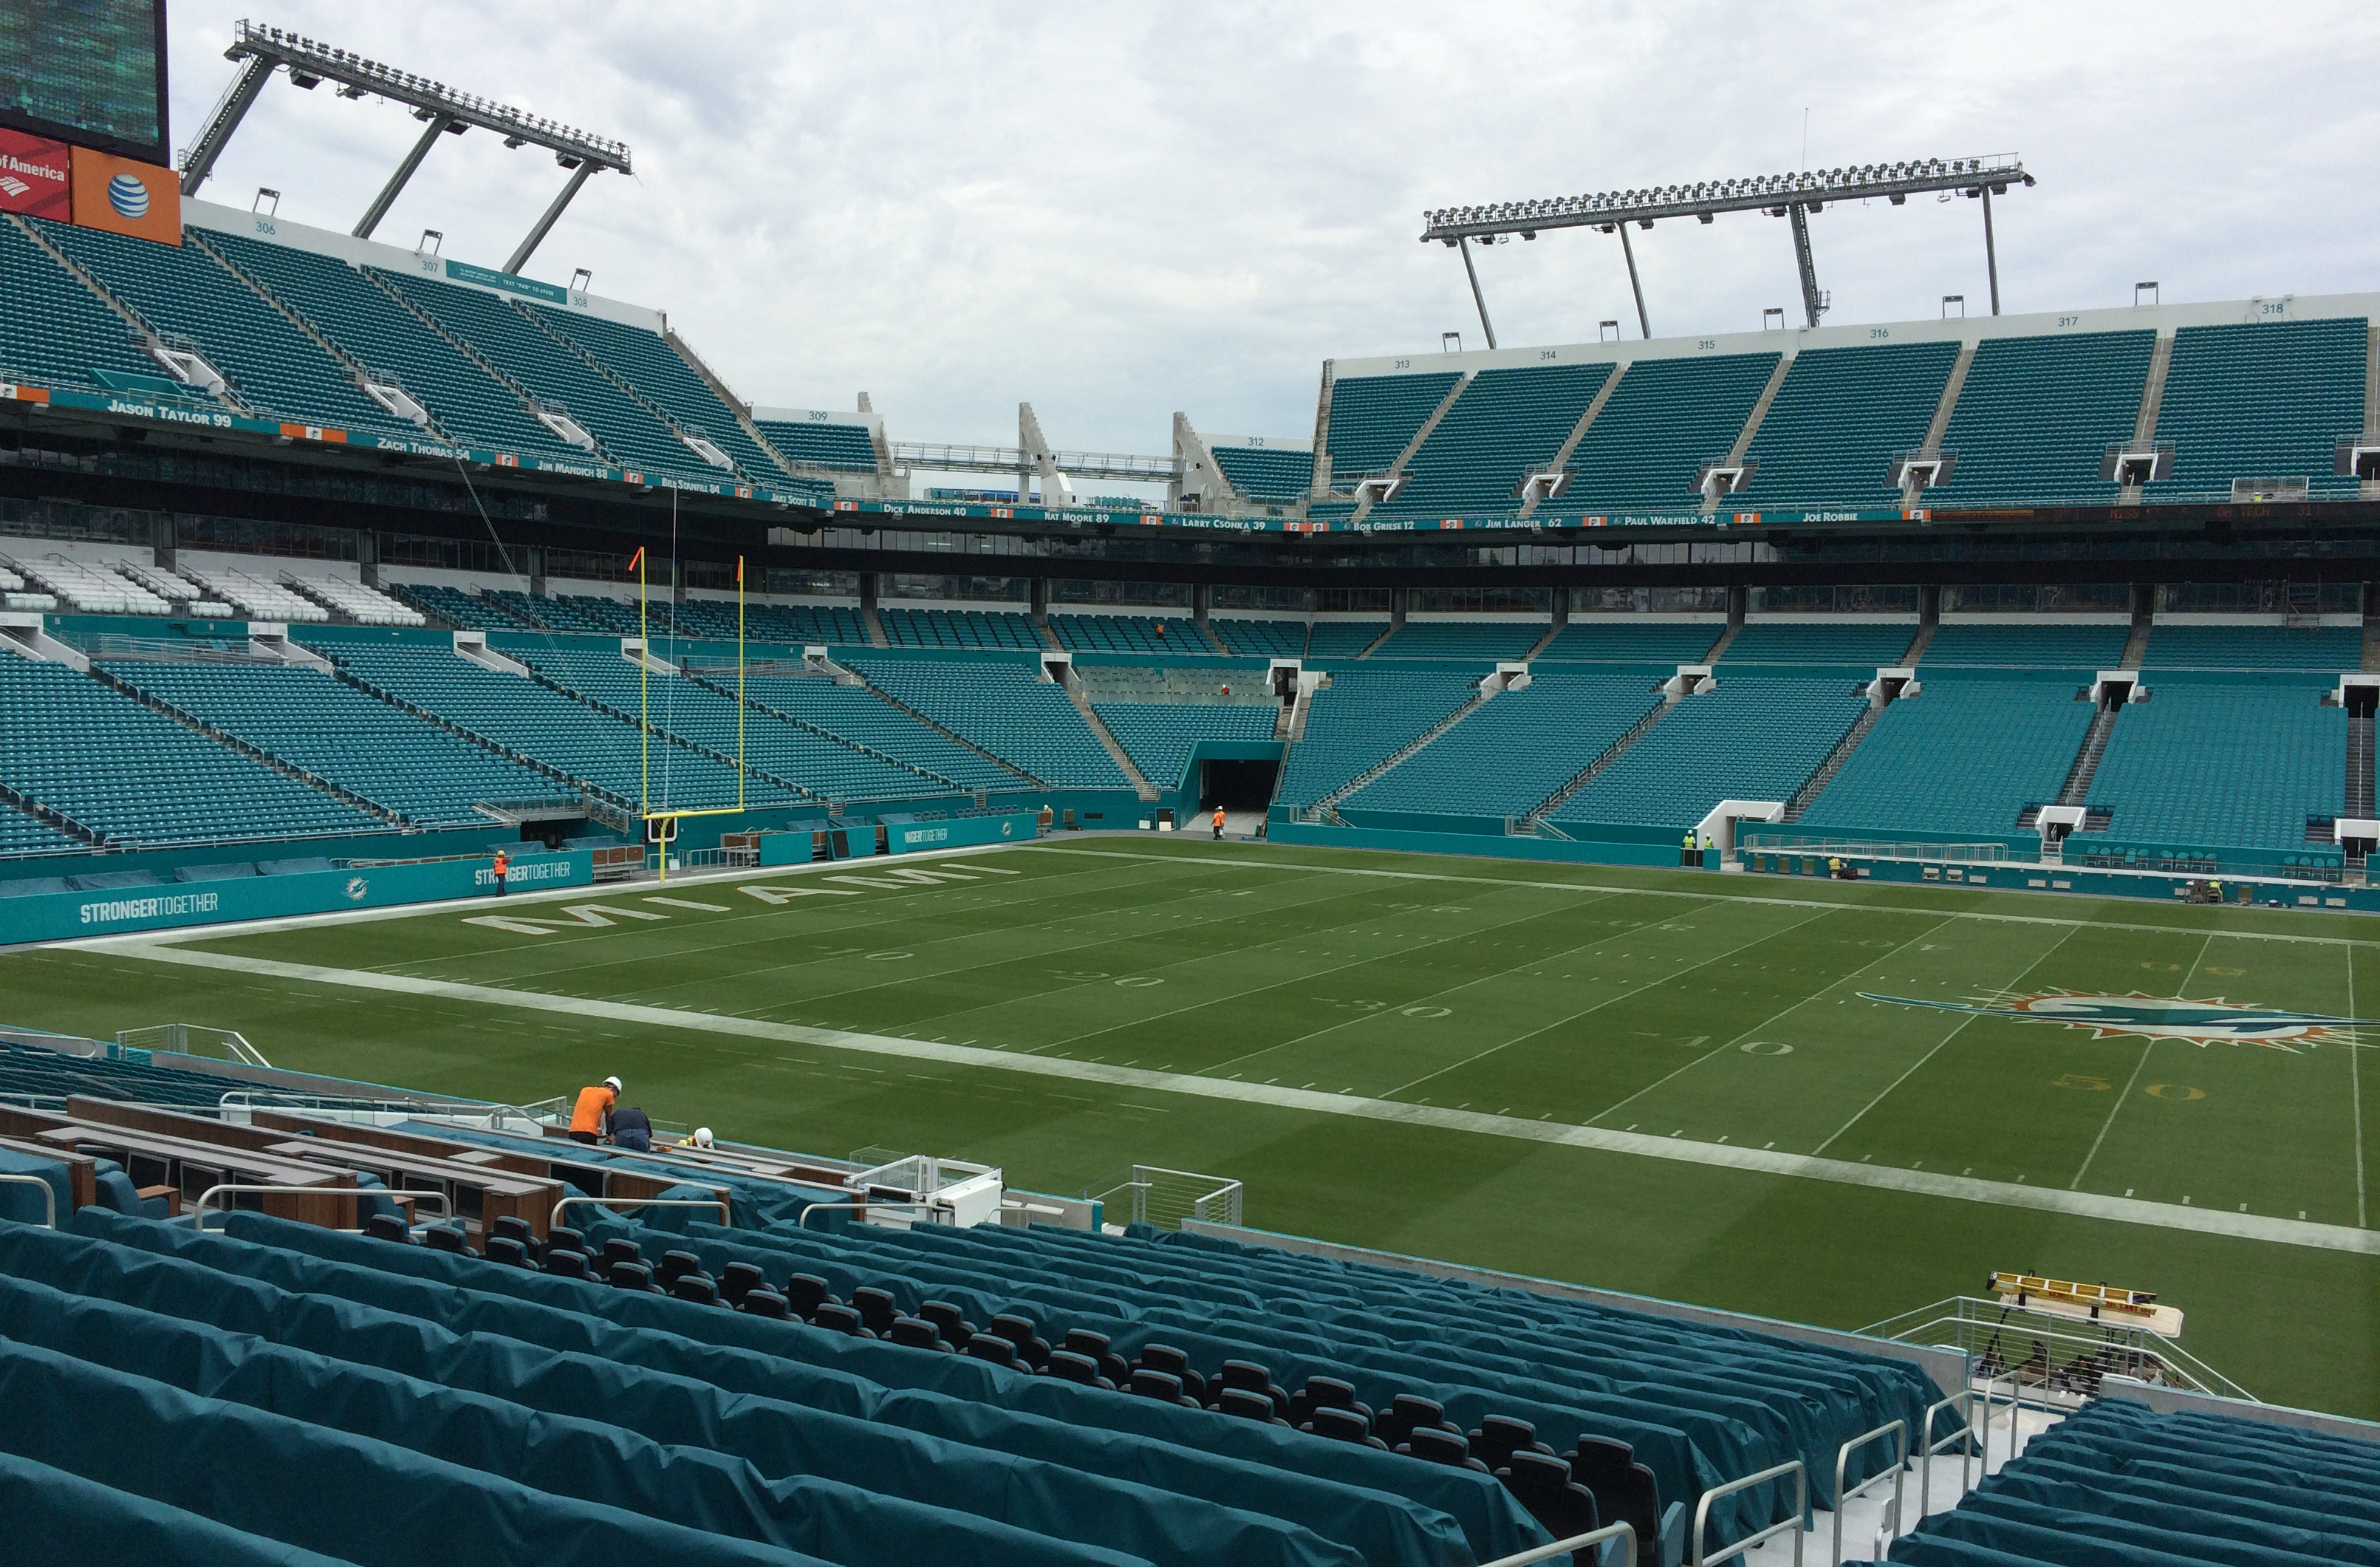 A renovated Sun Life Stadium is viewed Thursday, Sept. 27, 2015, in Miami Gardens, Fla. The Miami Dolphins are to play the Atlanta Falcons on Saturday at the stadium where every seat has been replaced and suites and bathrooms have been redesigned. (AP Pho